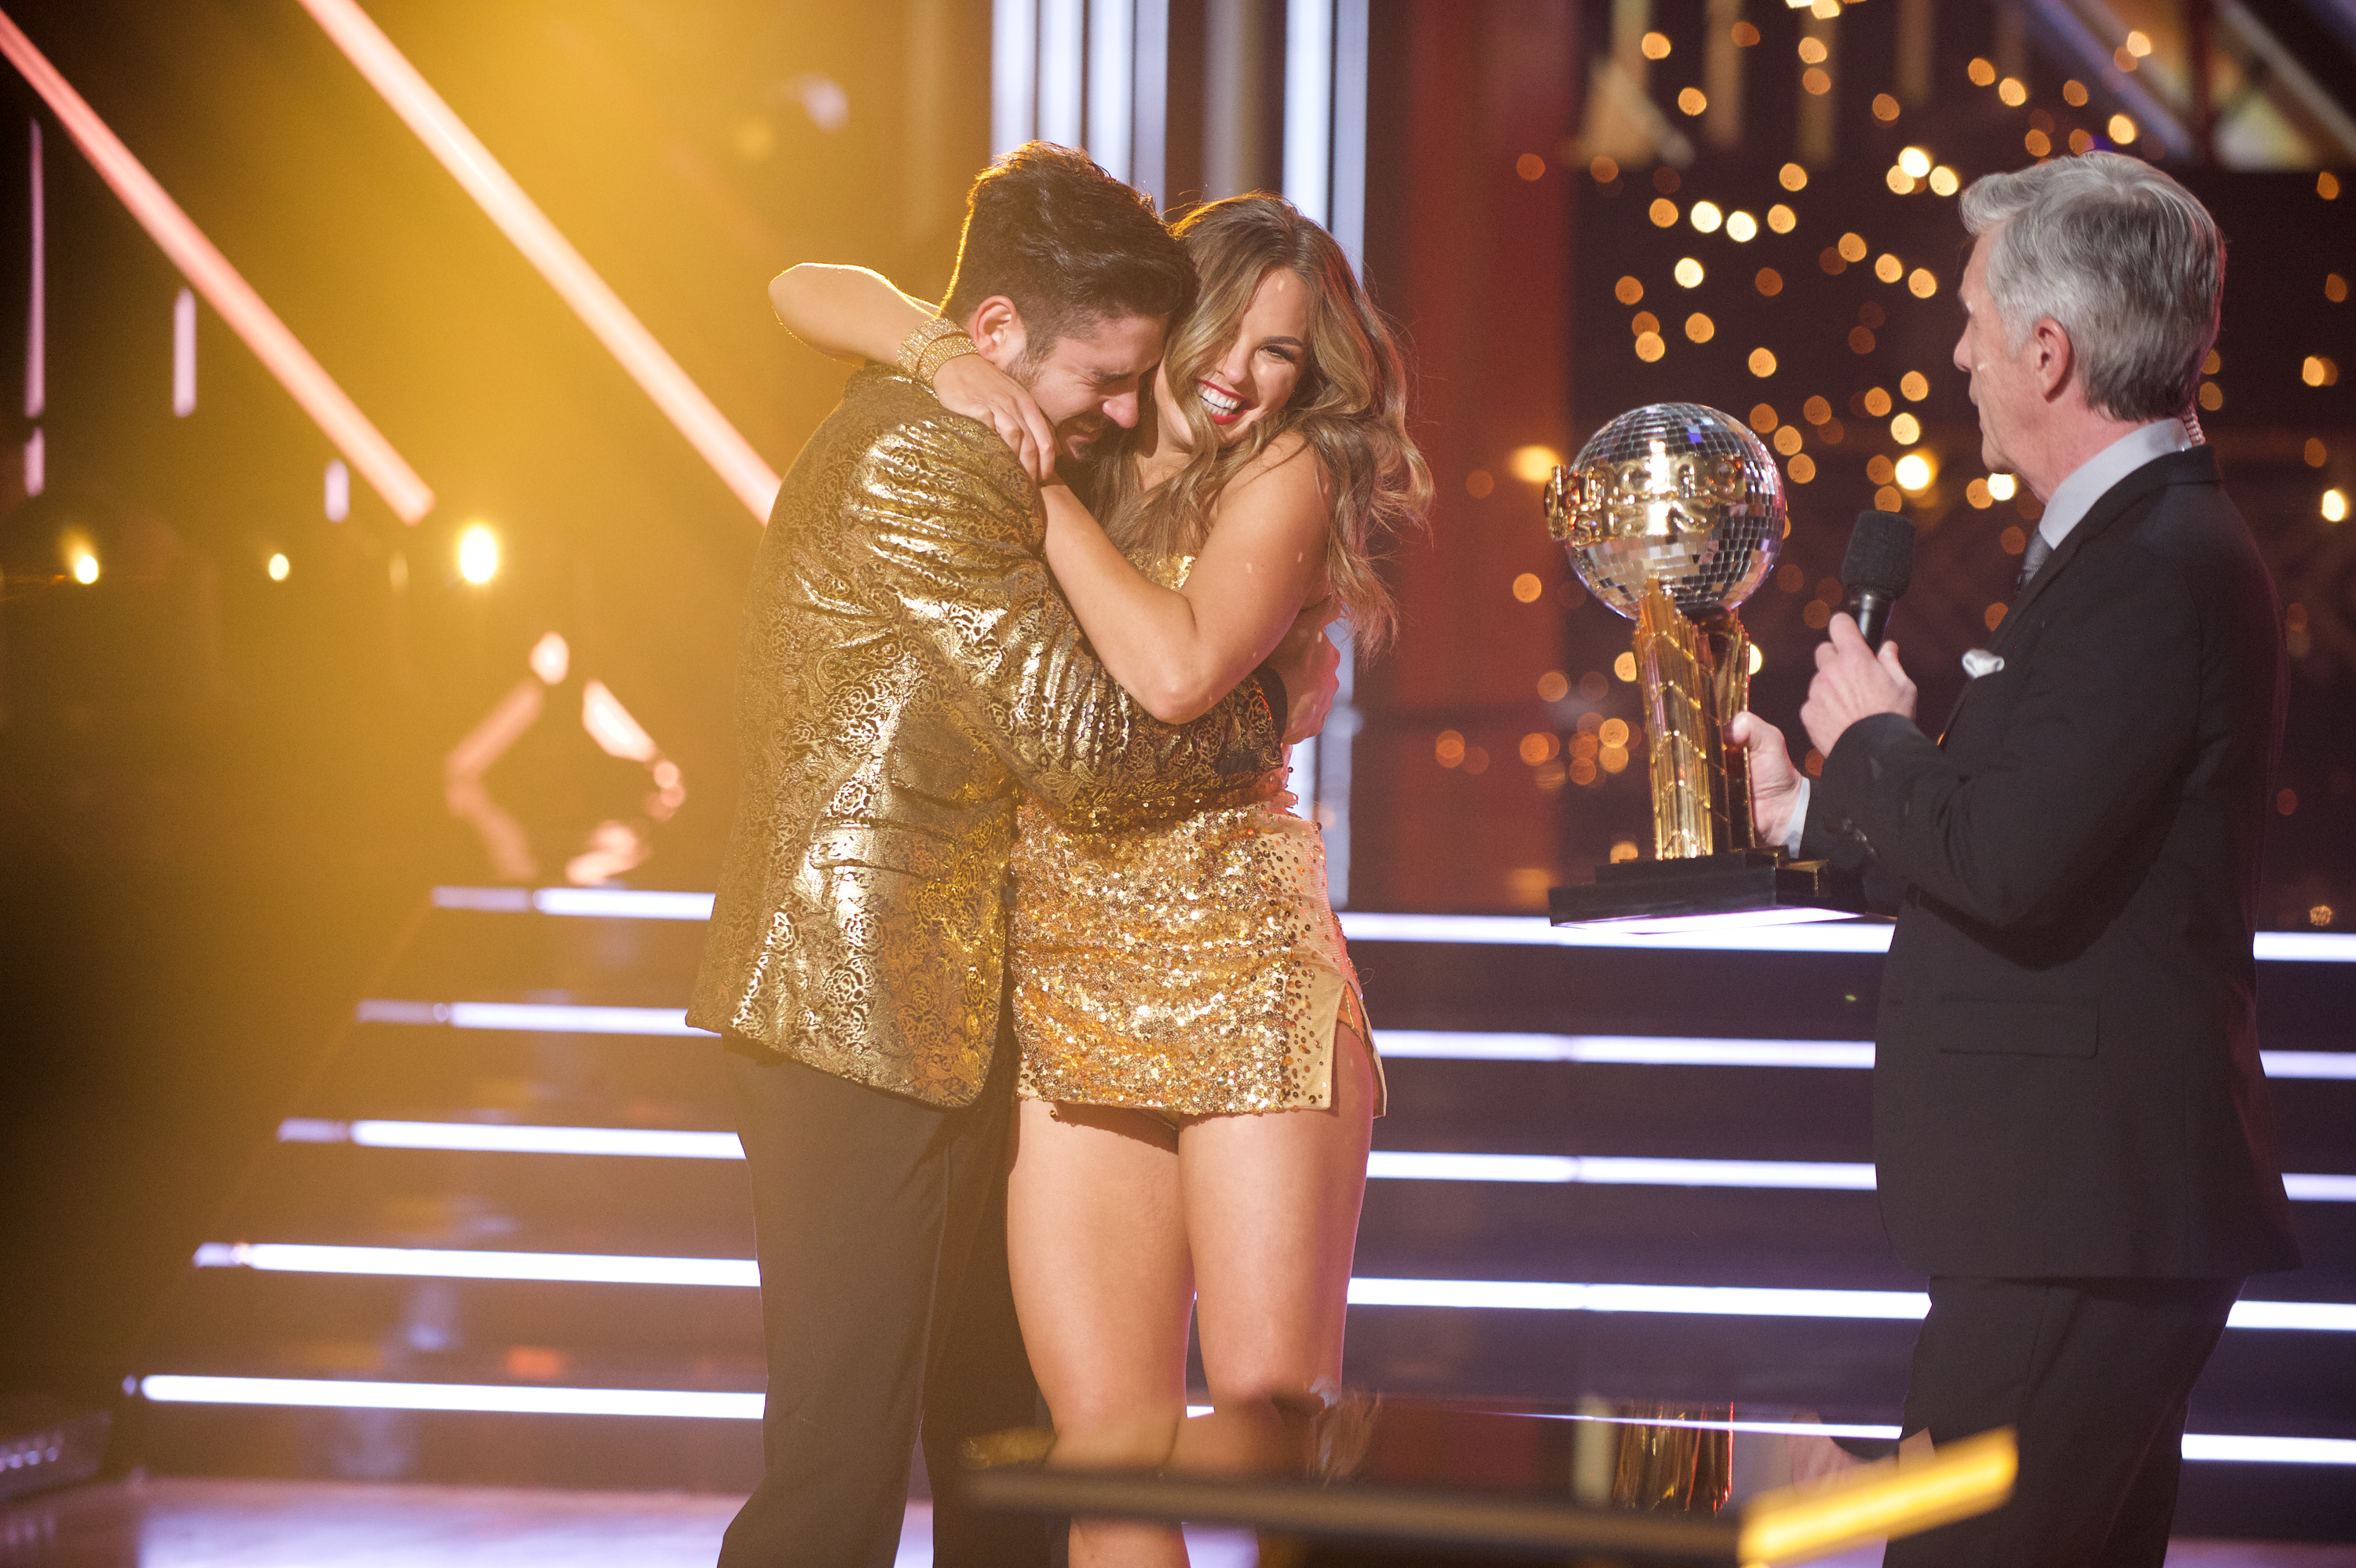 'DWTS' Pro Alan Bersten Shares Photo of Adorable Mirrorball Christmas Ornament With Hannah Brown